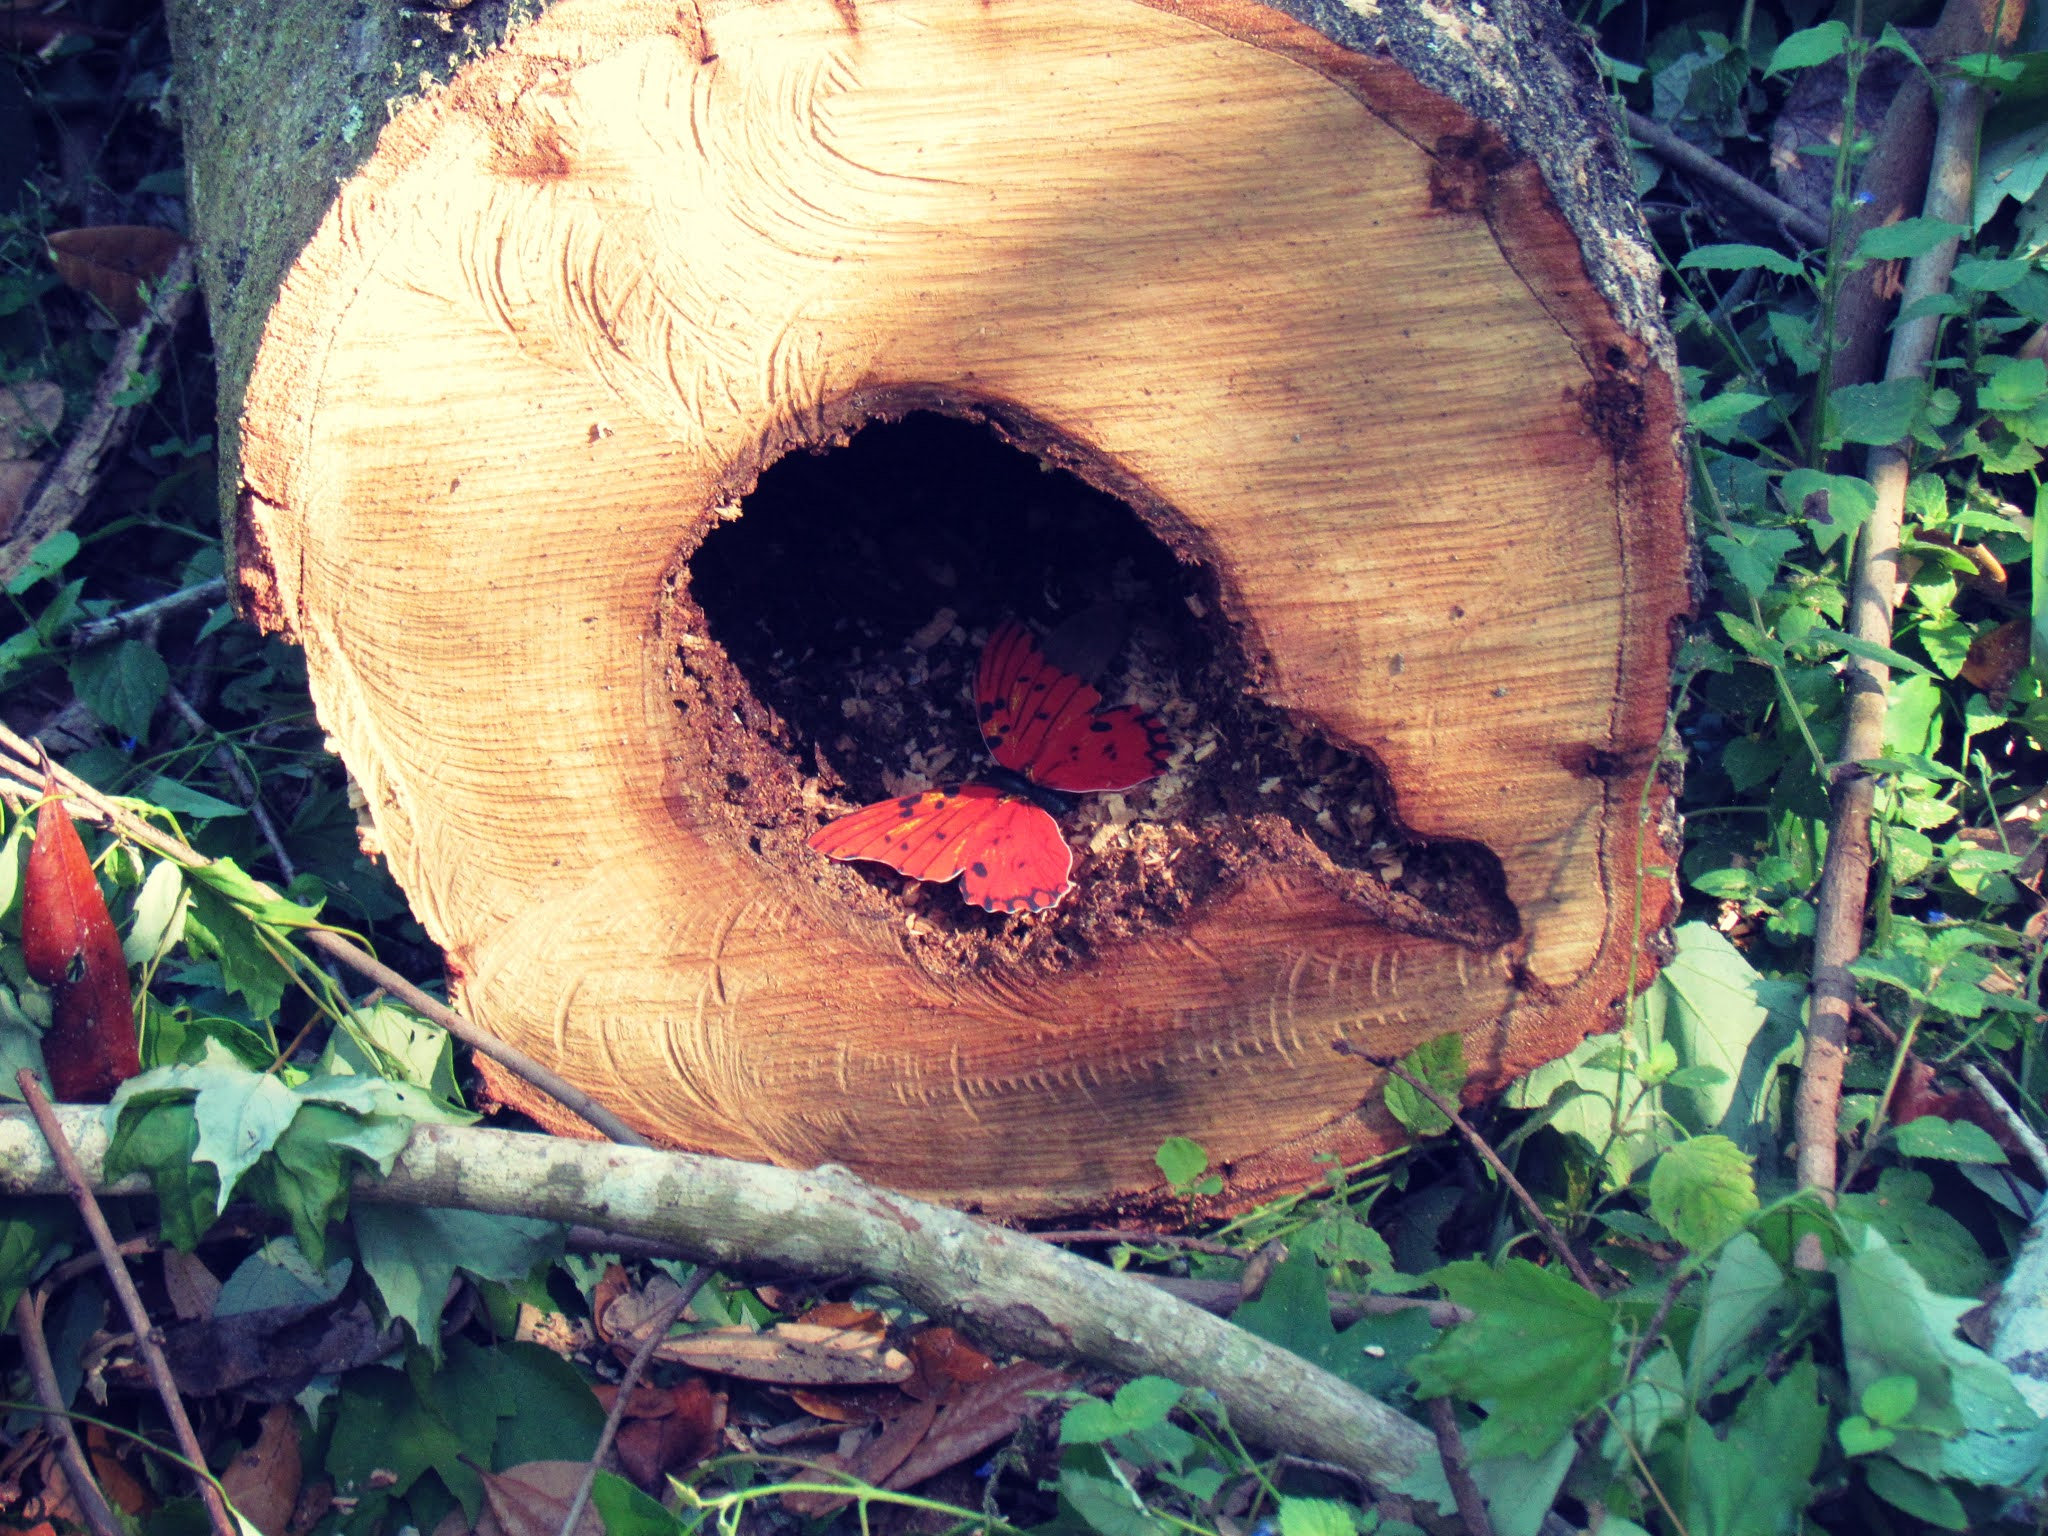 A wooden log in mother nature with a red toy butterfly magnet in the woodland trees and redwood forest